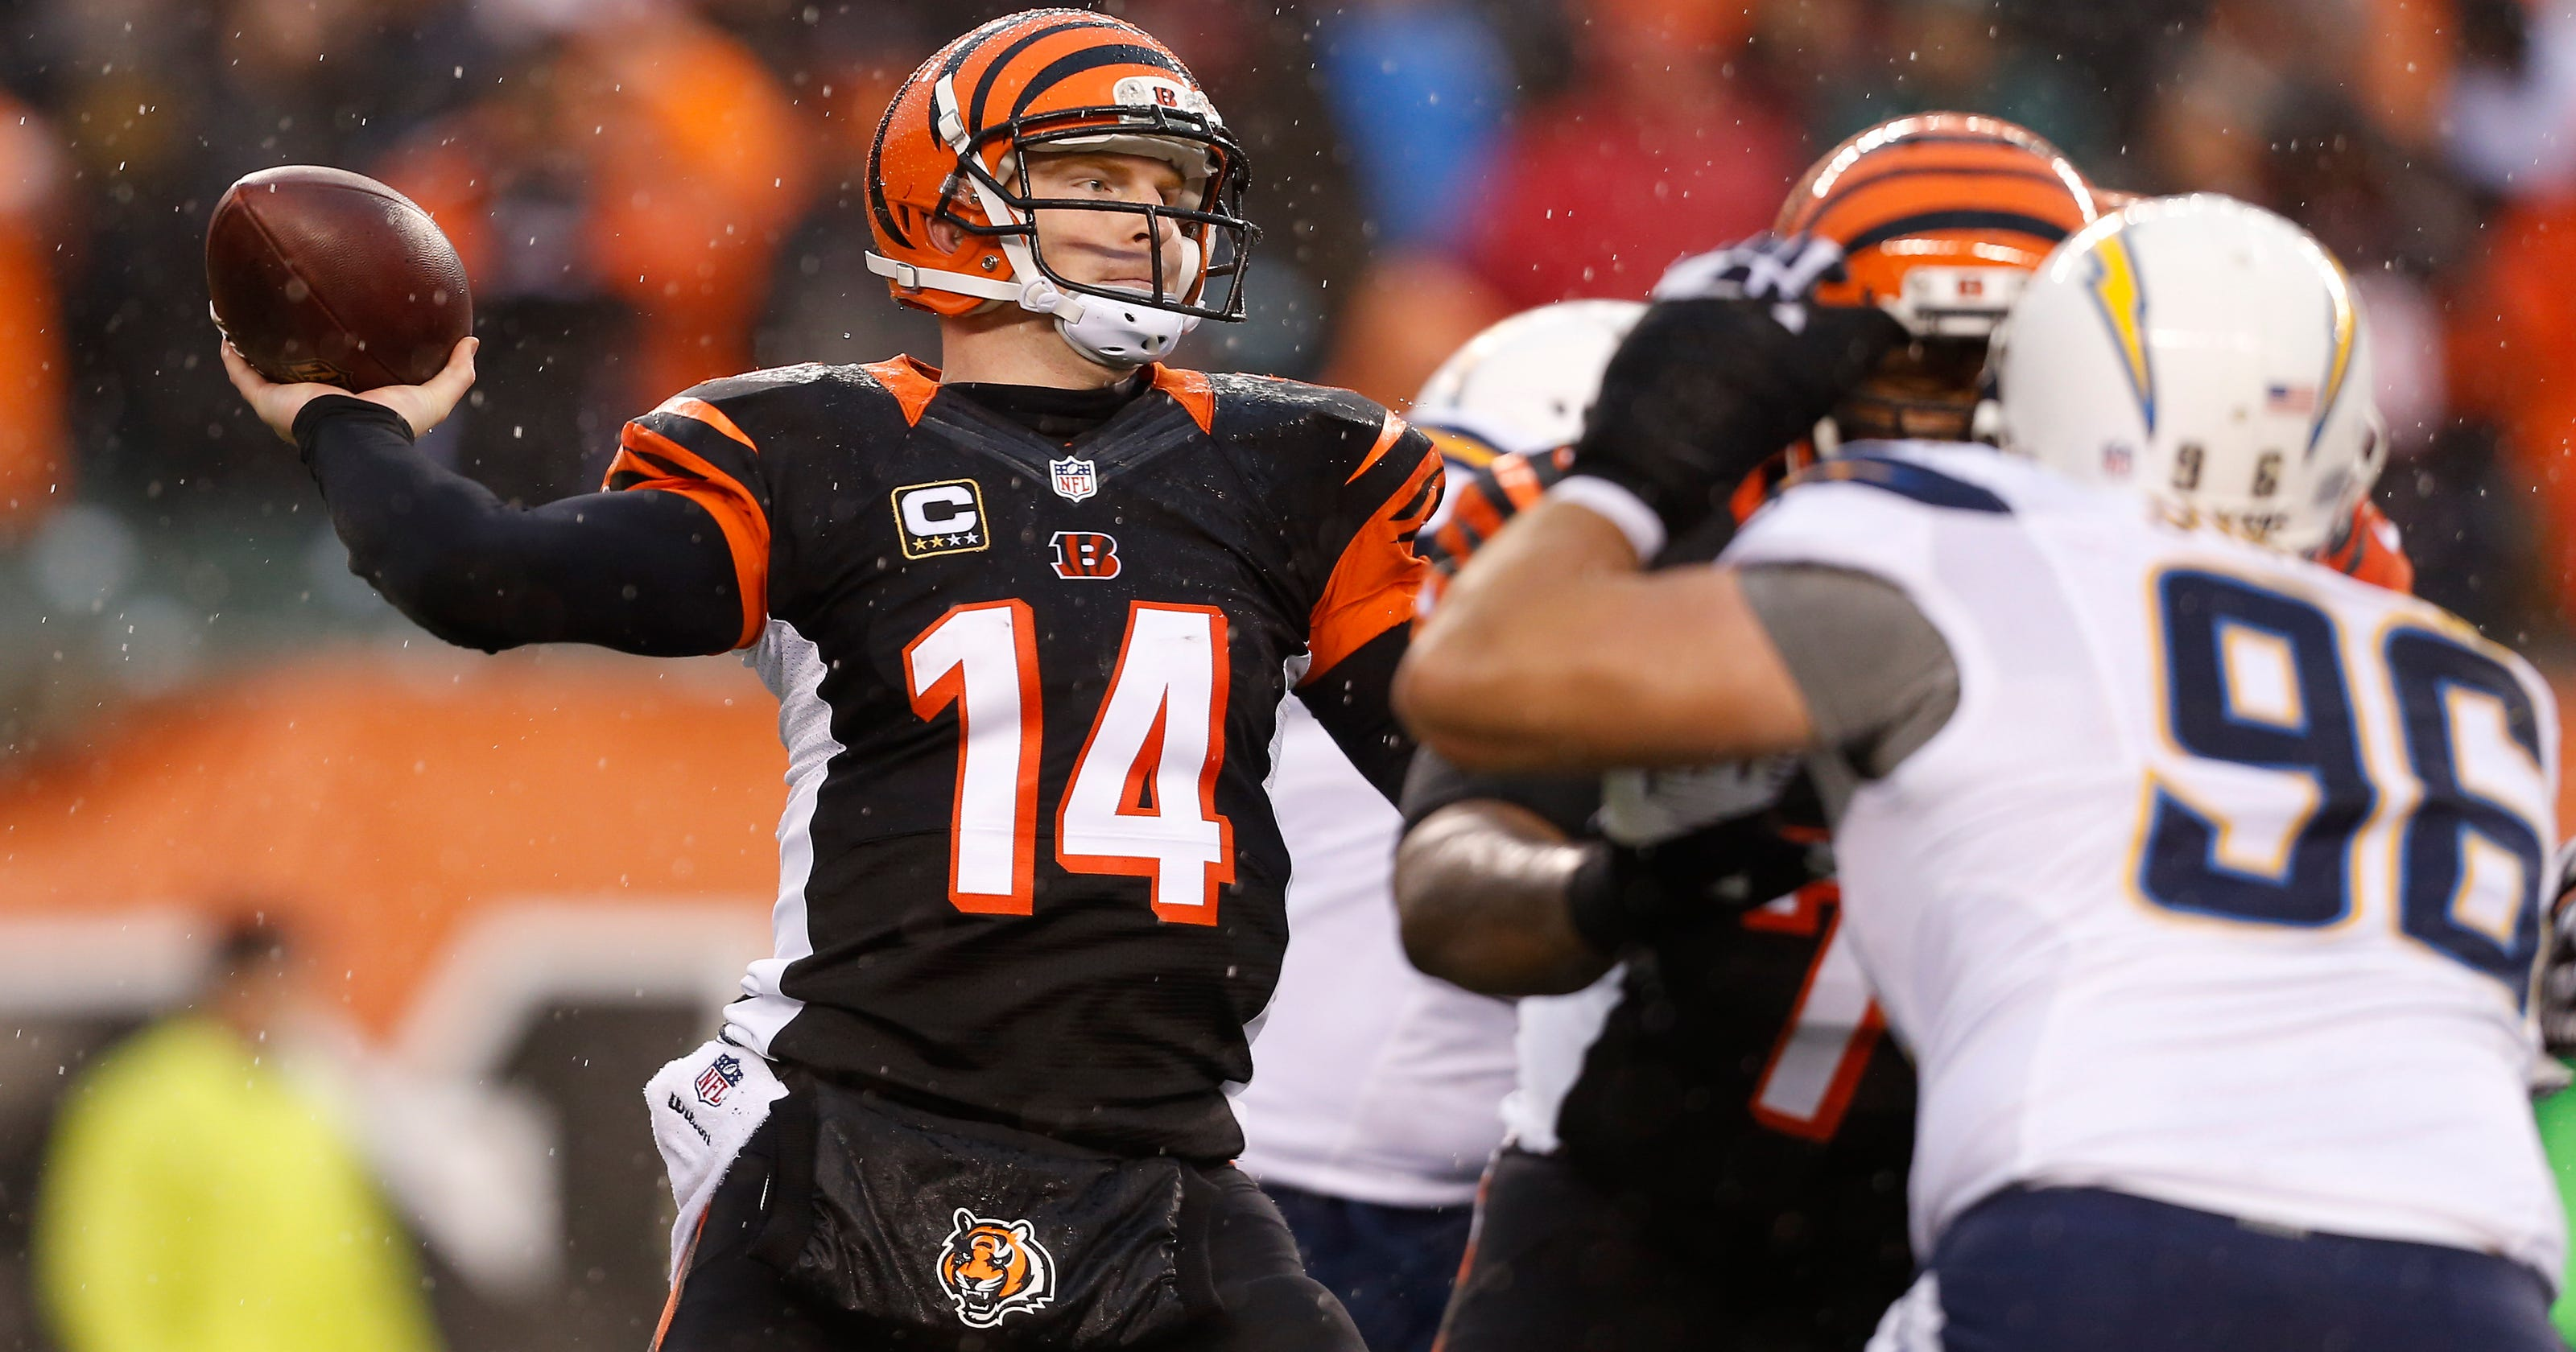 Video: What is Andy Dalton's value?